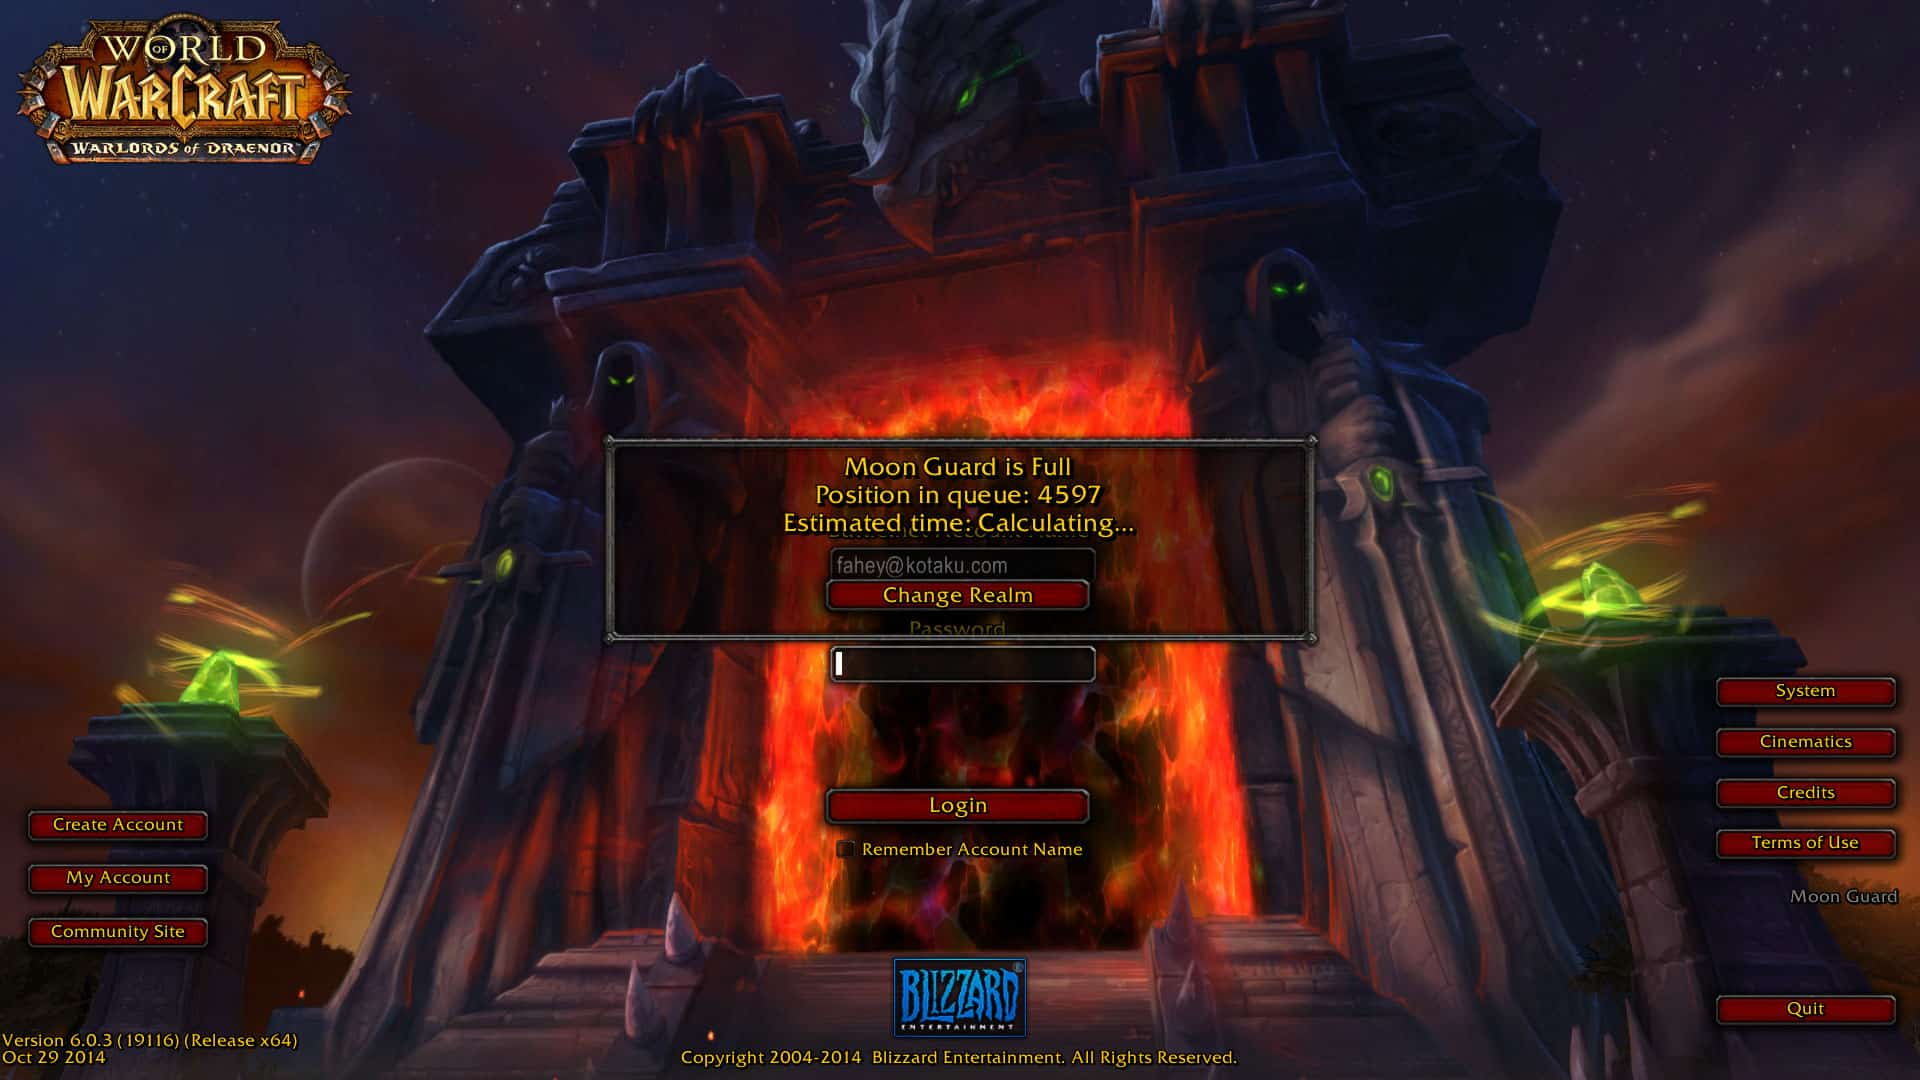 World of Warcraft Down second time within a Day | News of